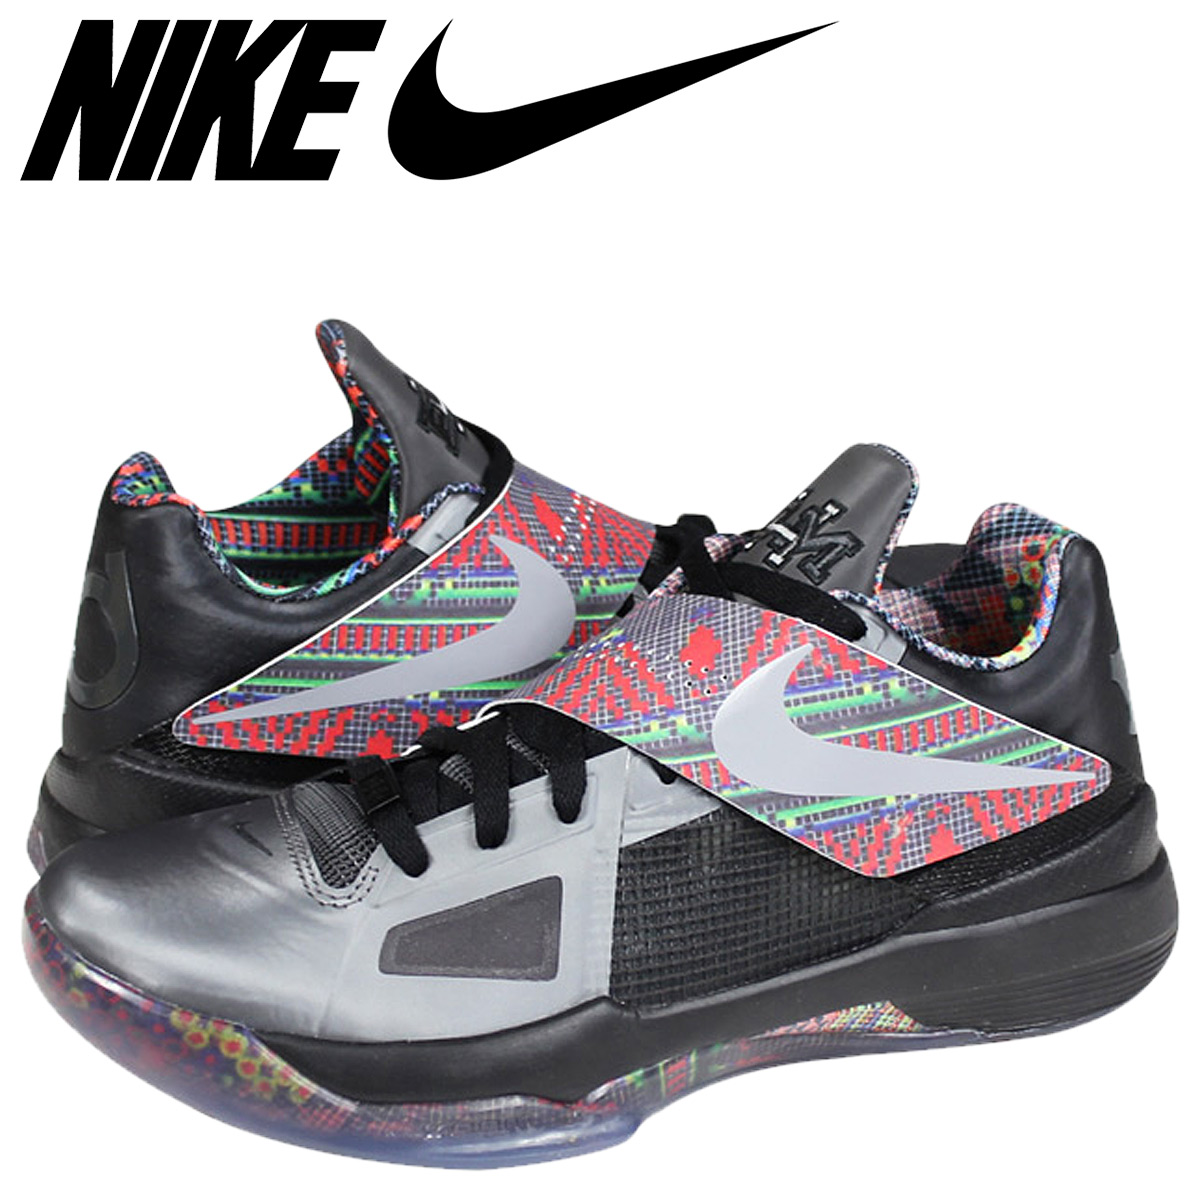 4d2f0ad1ea36 Nike NIKE zoom sneakers ZOOM KD 4 BLACK HISTORY MONTH Kevin Durant  530960-001 black mens